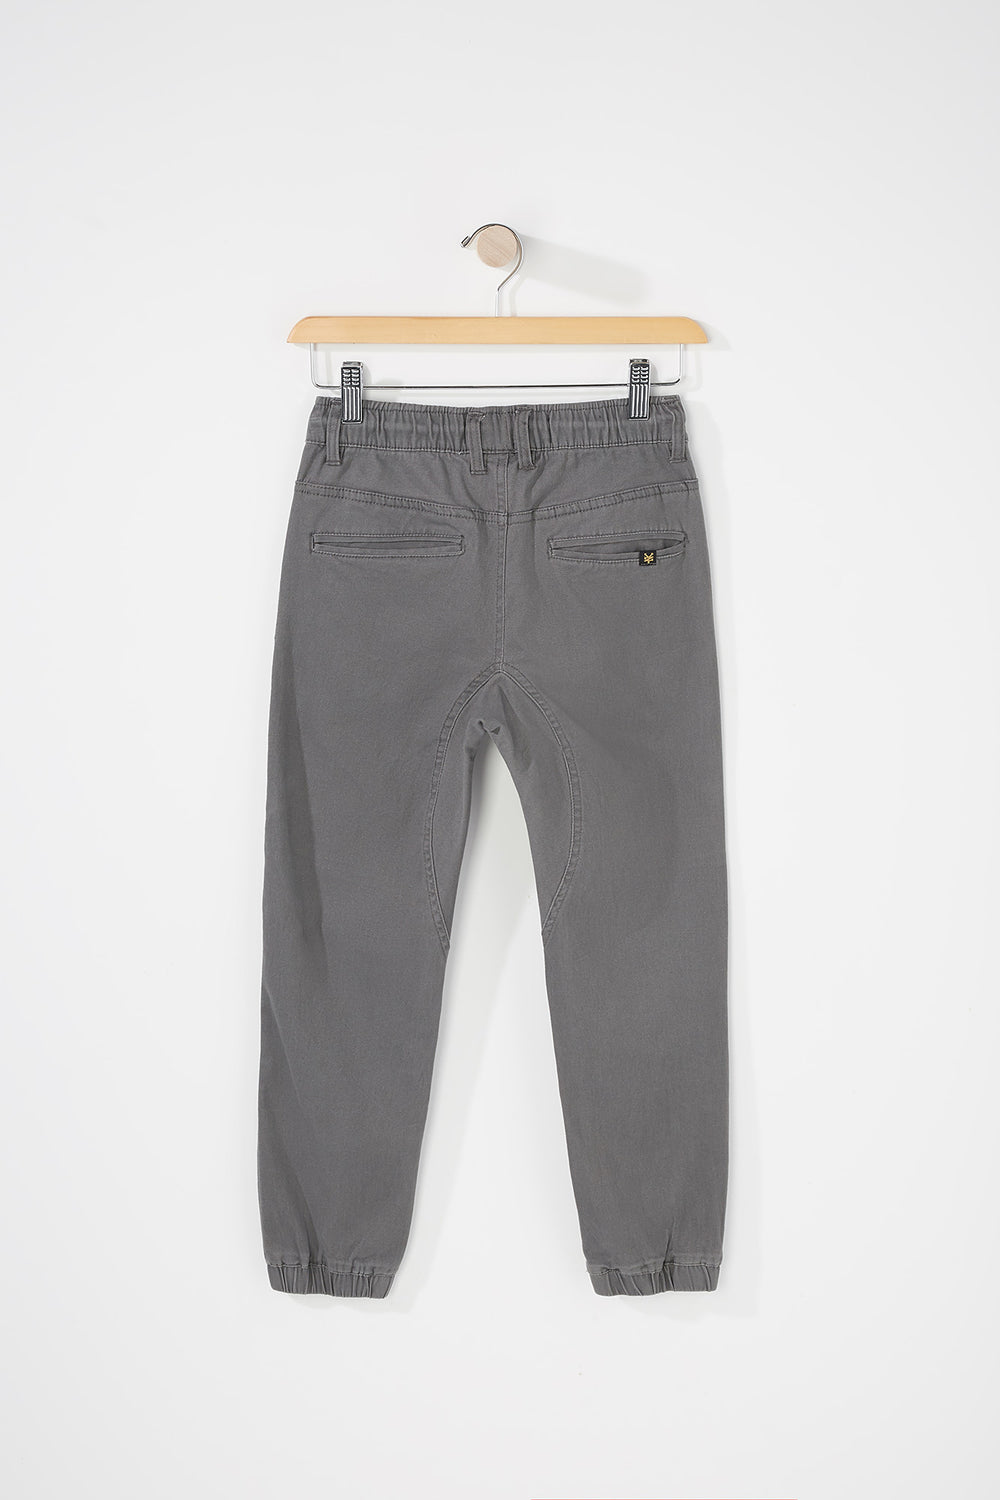 Jogger Avec Zip Zoo York Junior Gris